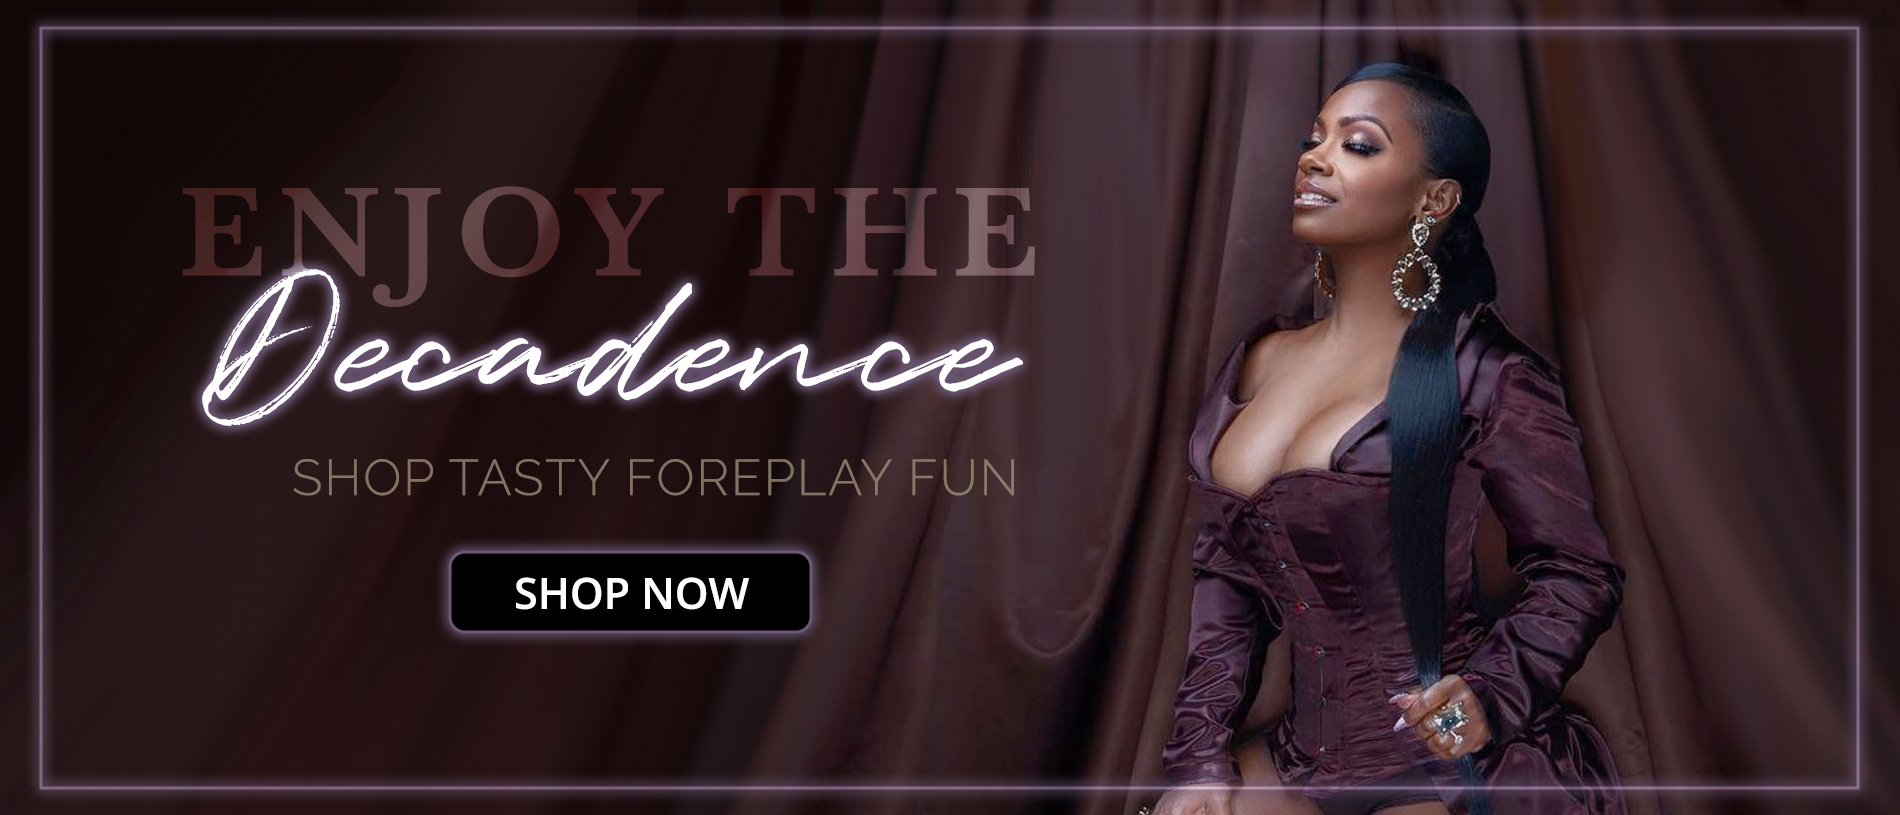 Enjoy the decandence! Shop Tasty Foreplay Treats